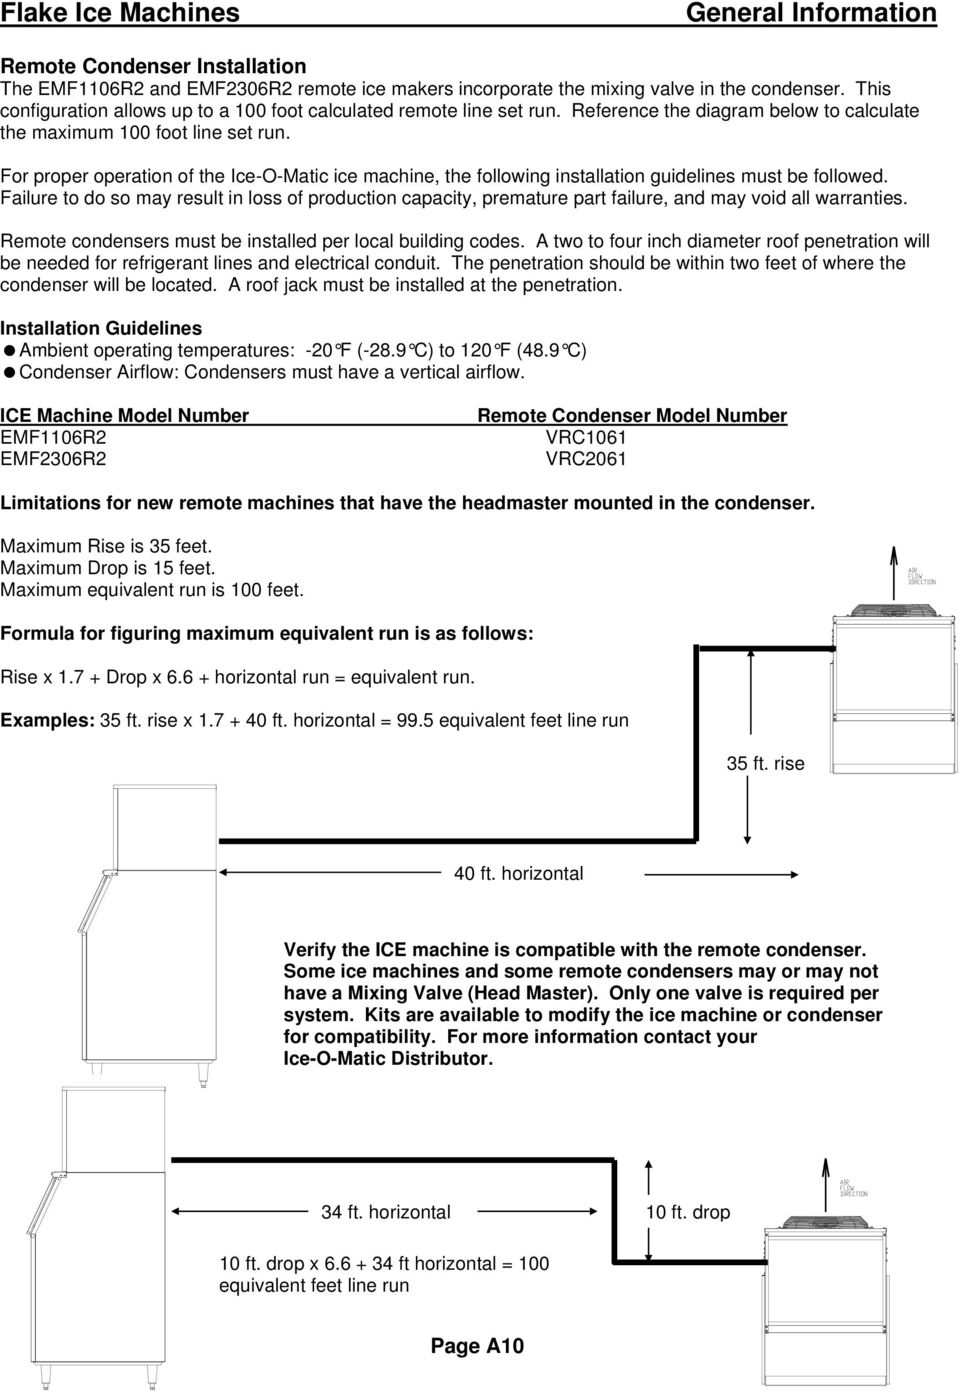 medium resolution of for proper operation of the ice o matic ice machine the following installation